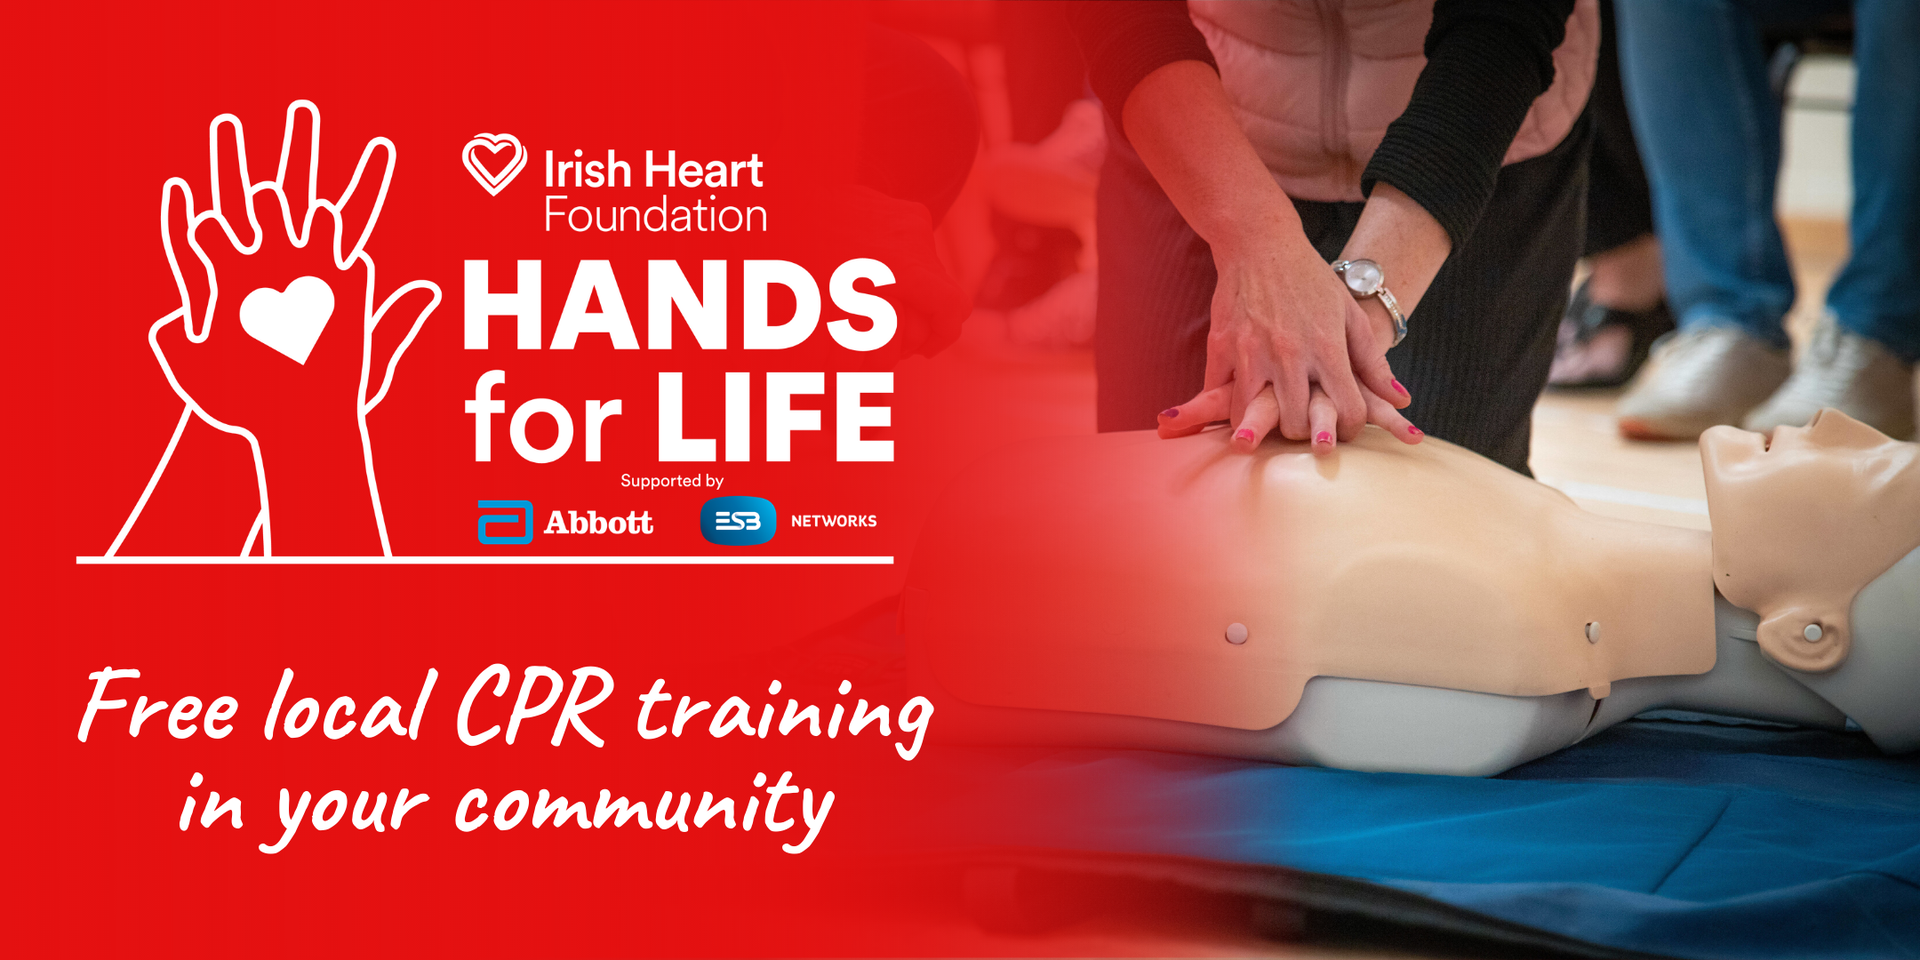 Hands for life -free local CPR training in your community